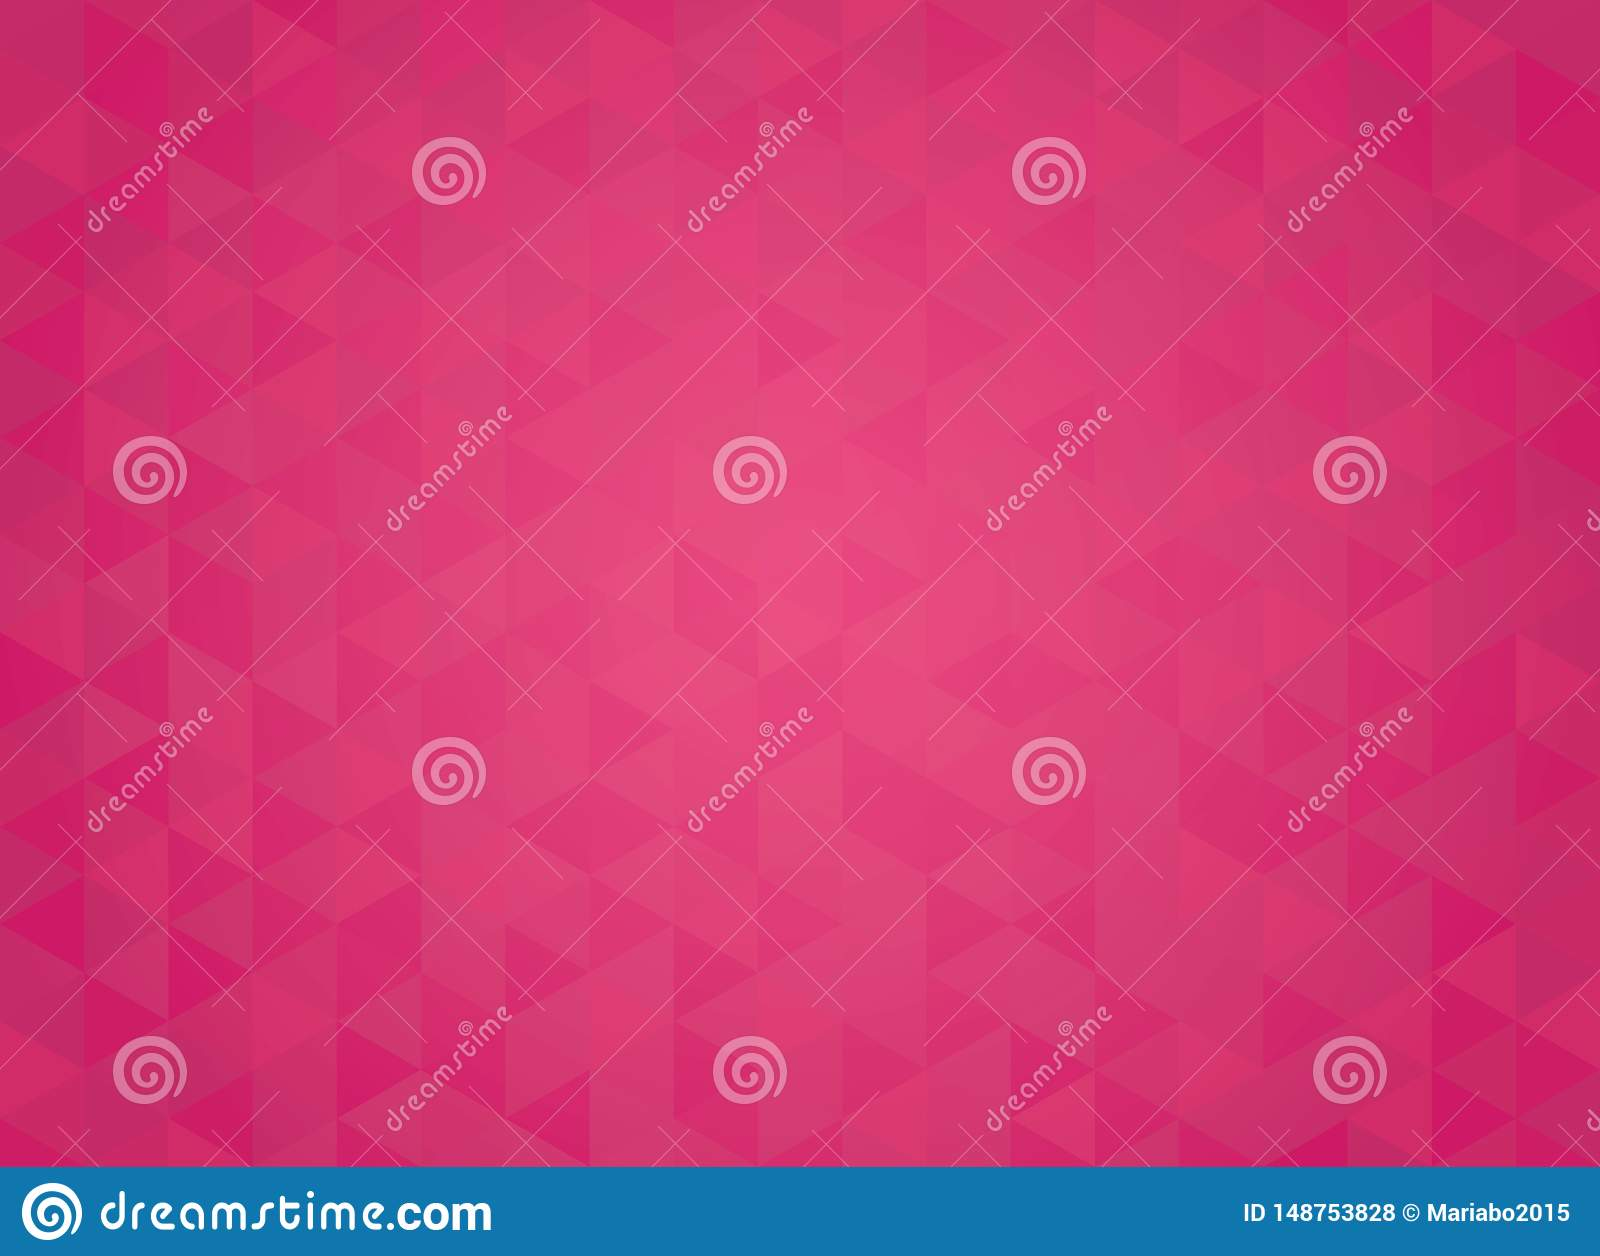 Abstract geometric red gradient background